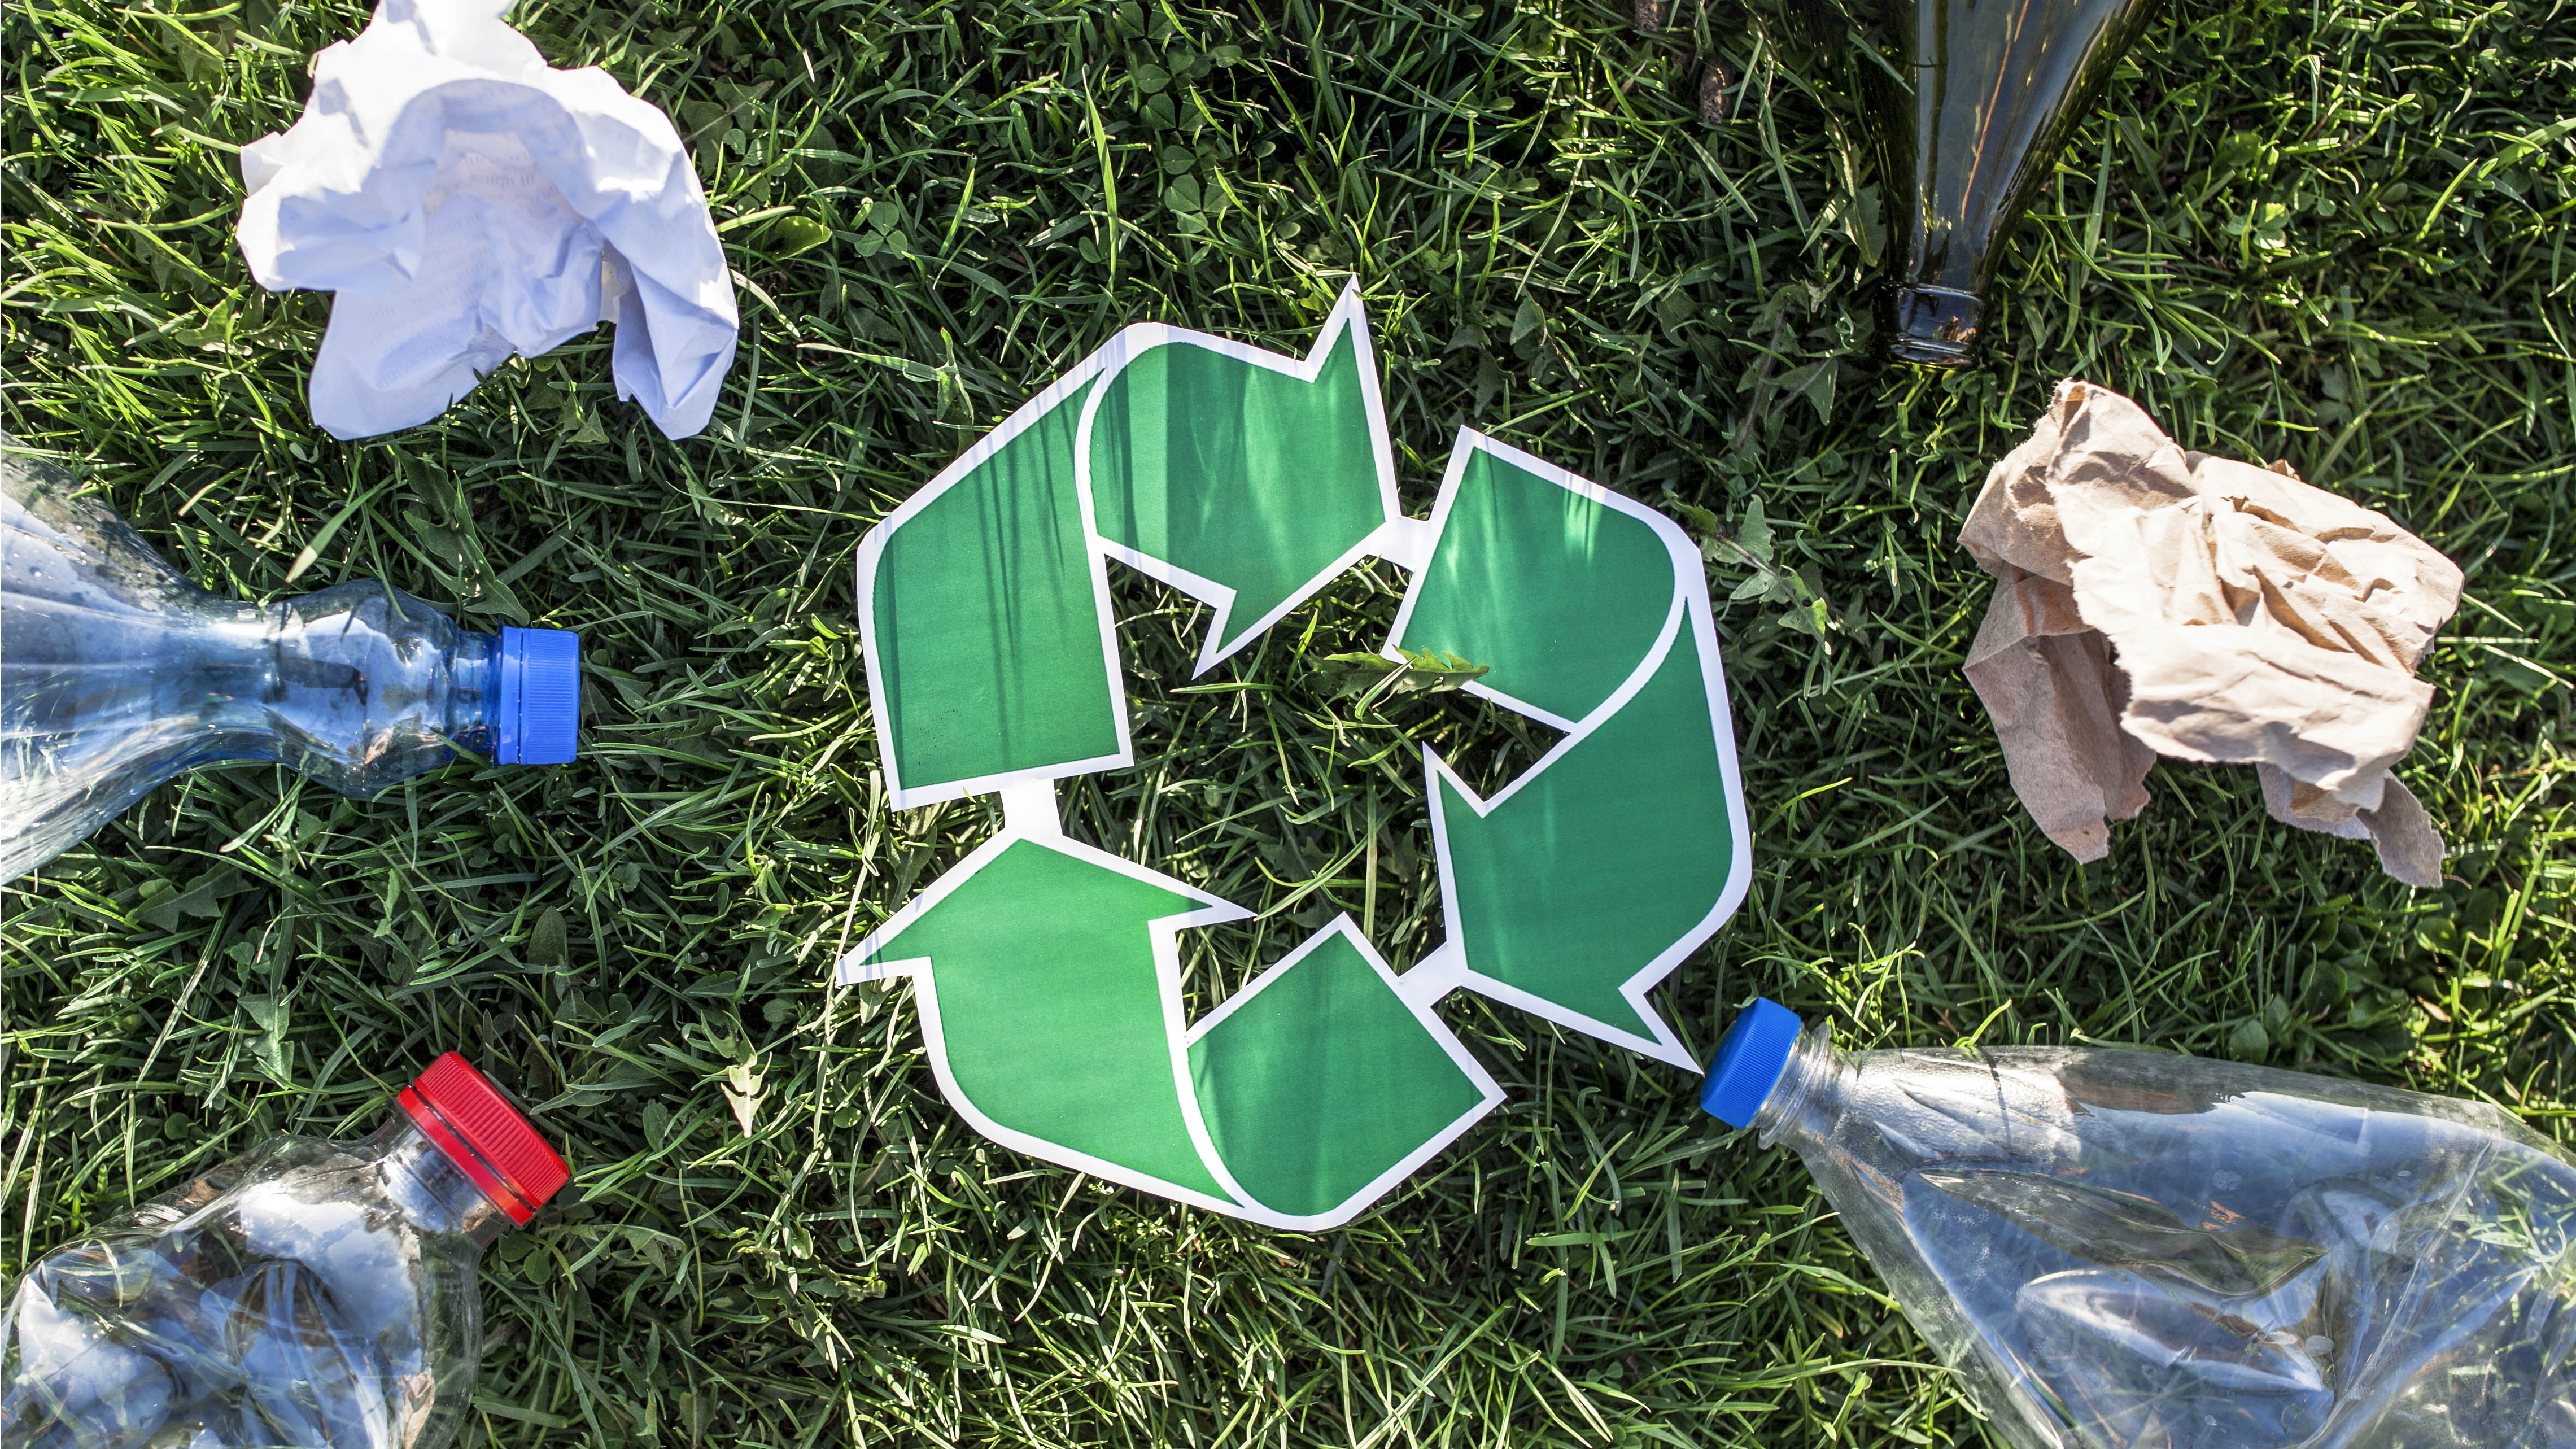 Image_3_Bad_Recycling_Small